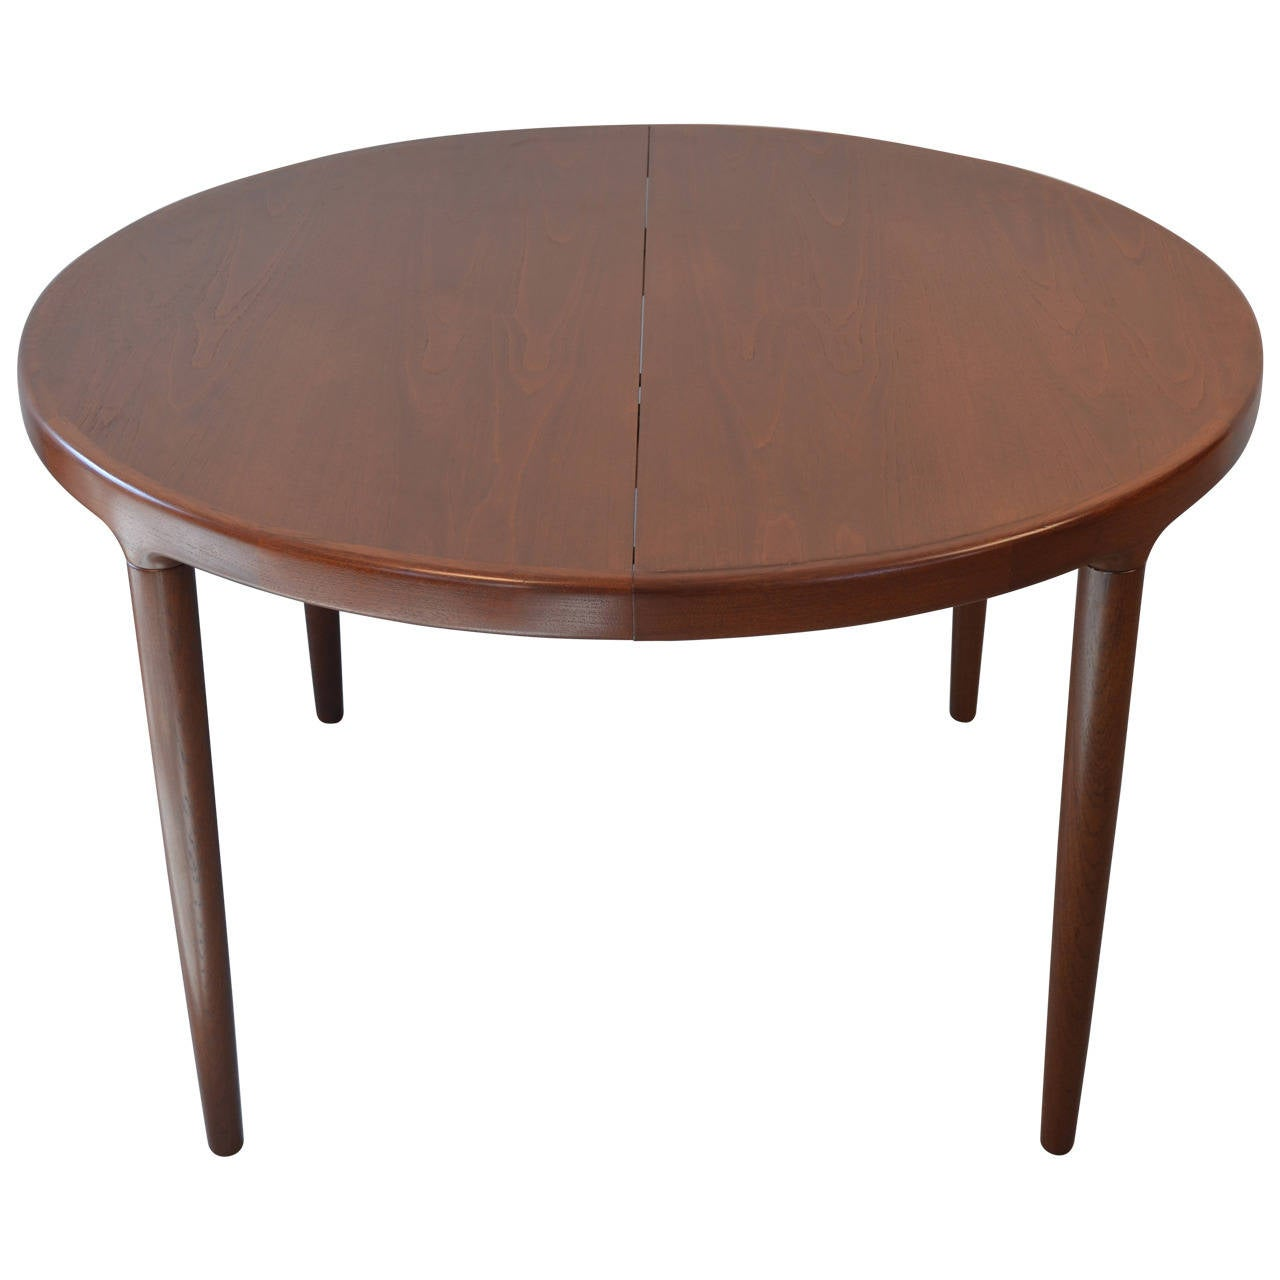 round dining table with two leaves for sale at 1stdibs. Black Bedroom Furniture Sets. Home Design Ideas